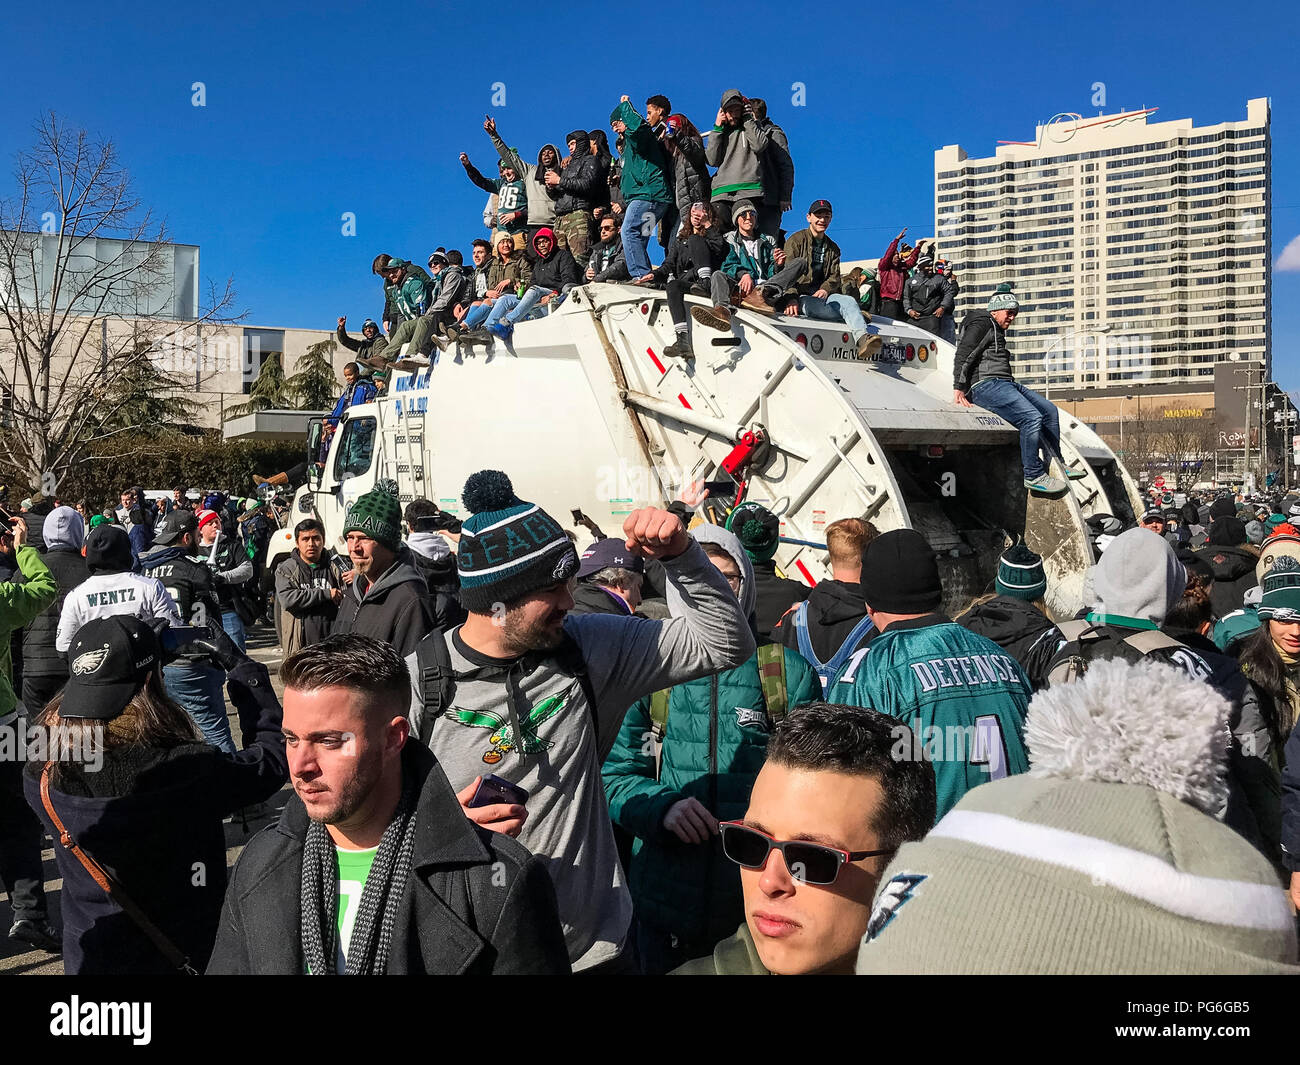 Eagles fans celebrate the 2018 Superbowl victory with a parade in Philadelphia, Pennsylvania, USA. - Stock Image